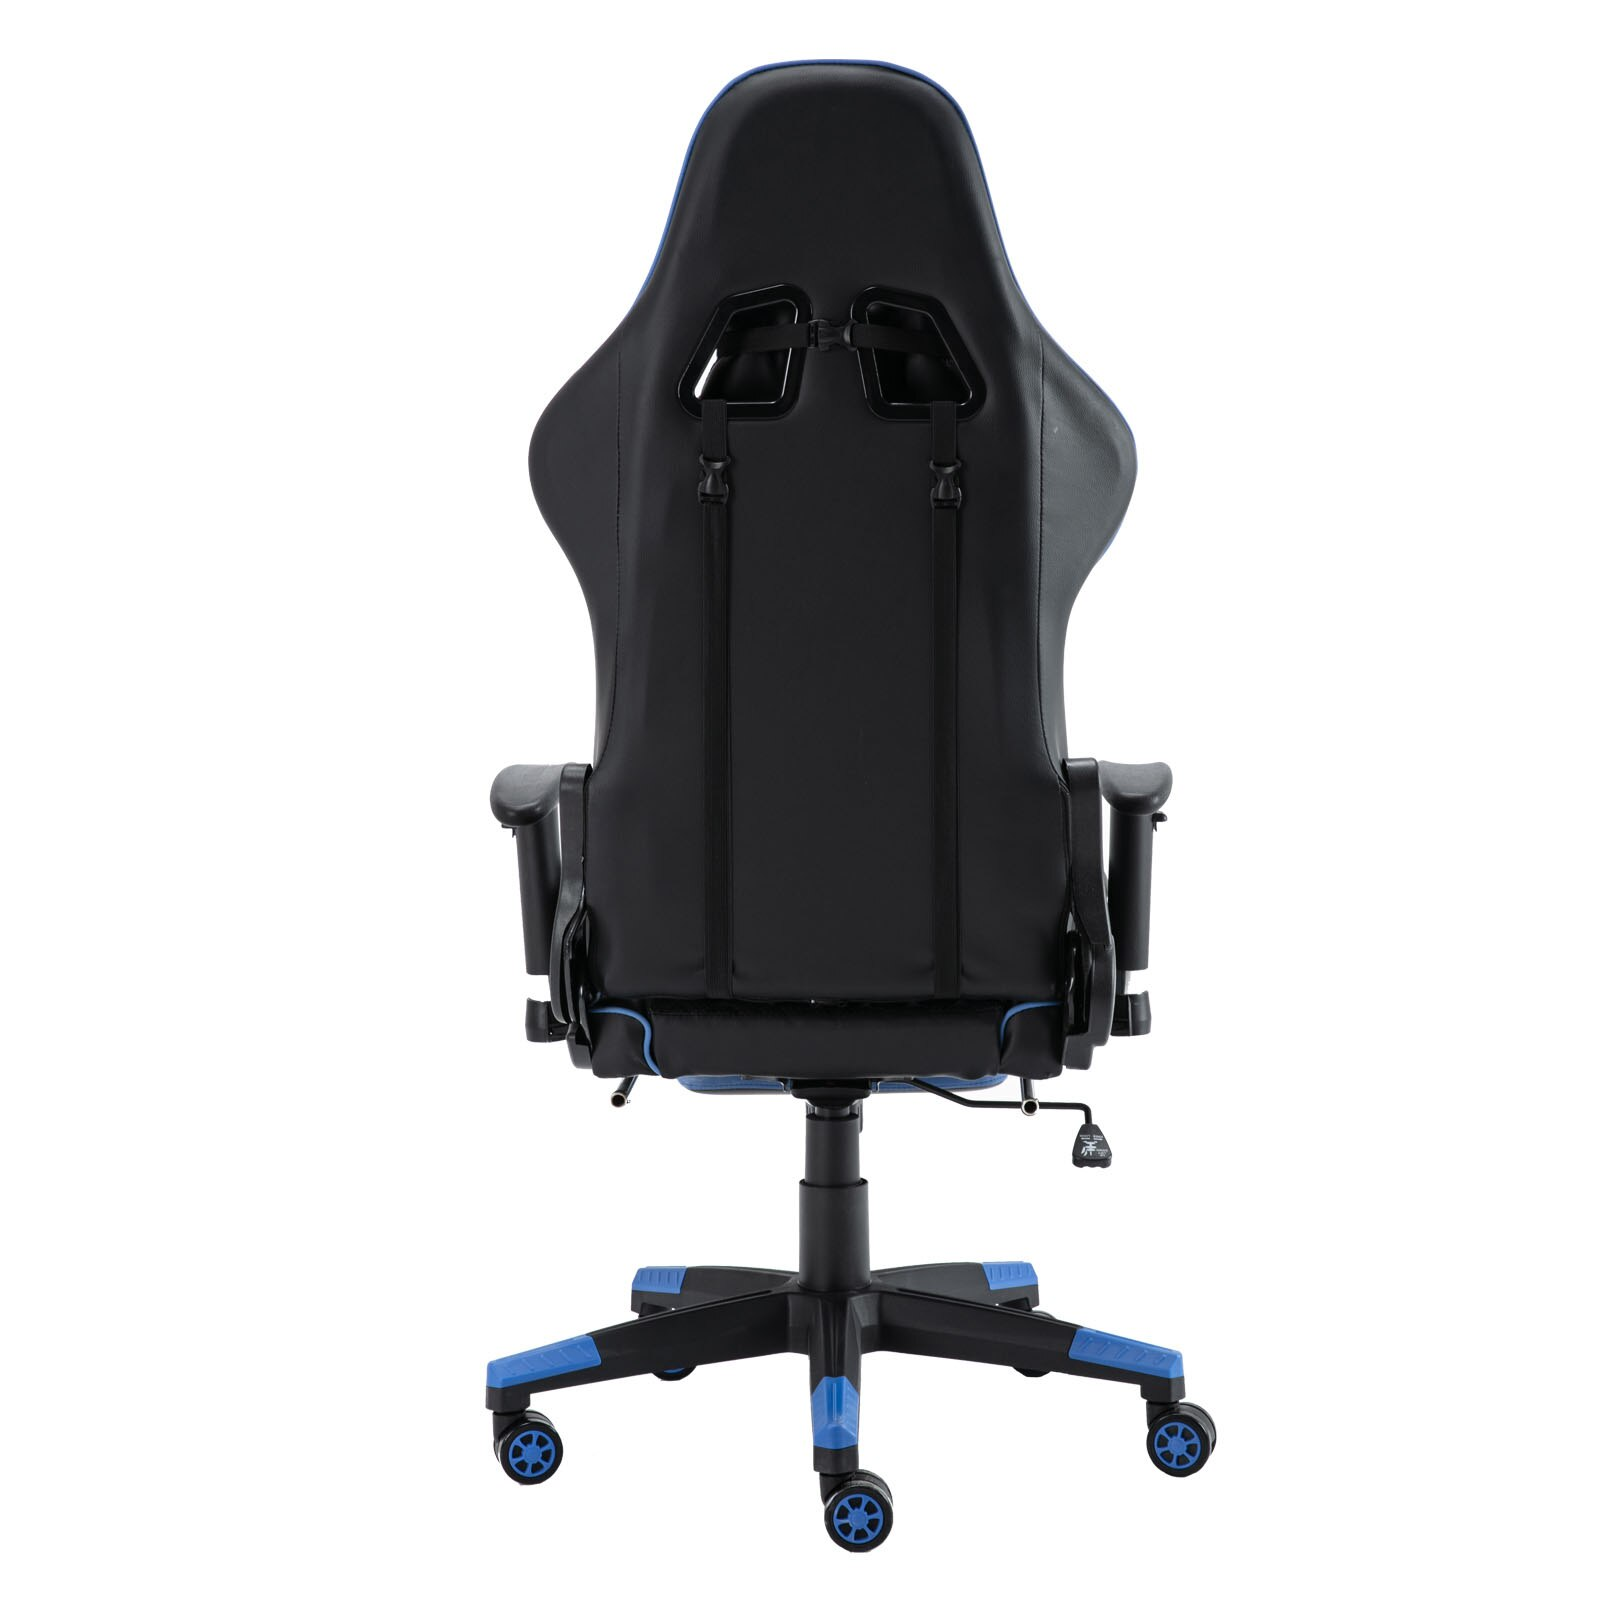 H9c9dd31ed35e40c5be764f5554661d19r - Gaming Chair Computer Armchair Adjustable Armrest And Footrest PVC Household Office Chair Ergonomic Computer Gamer Chair